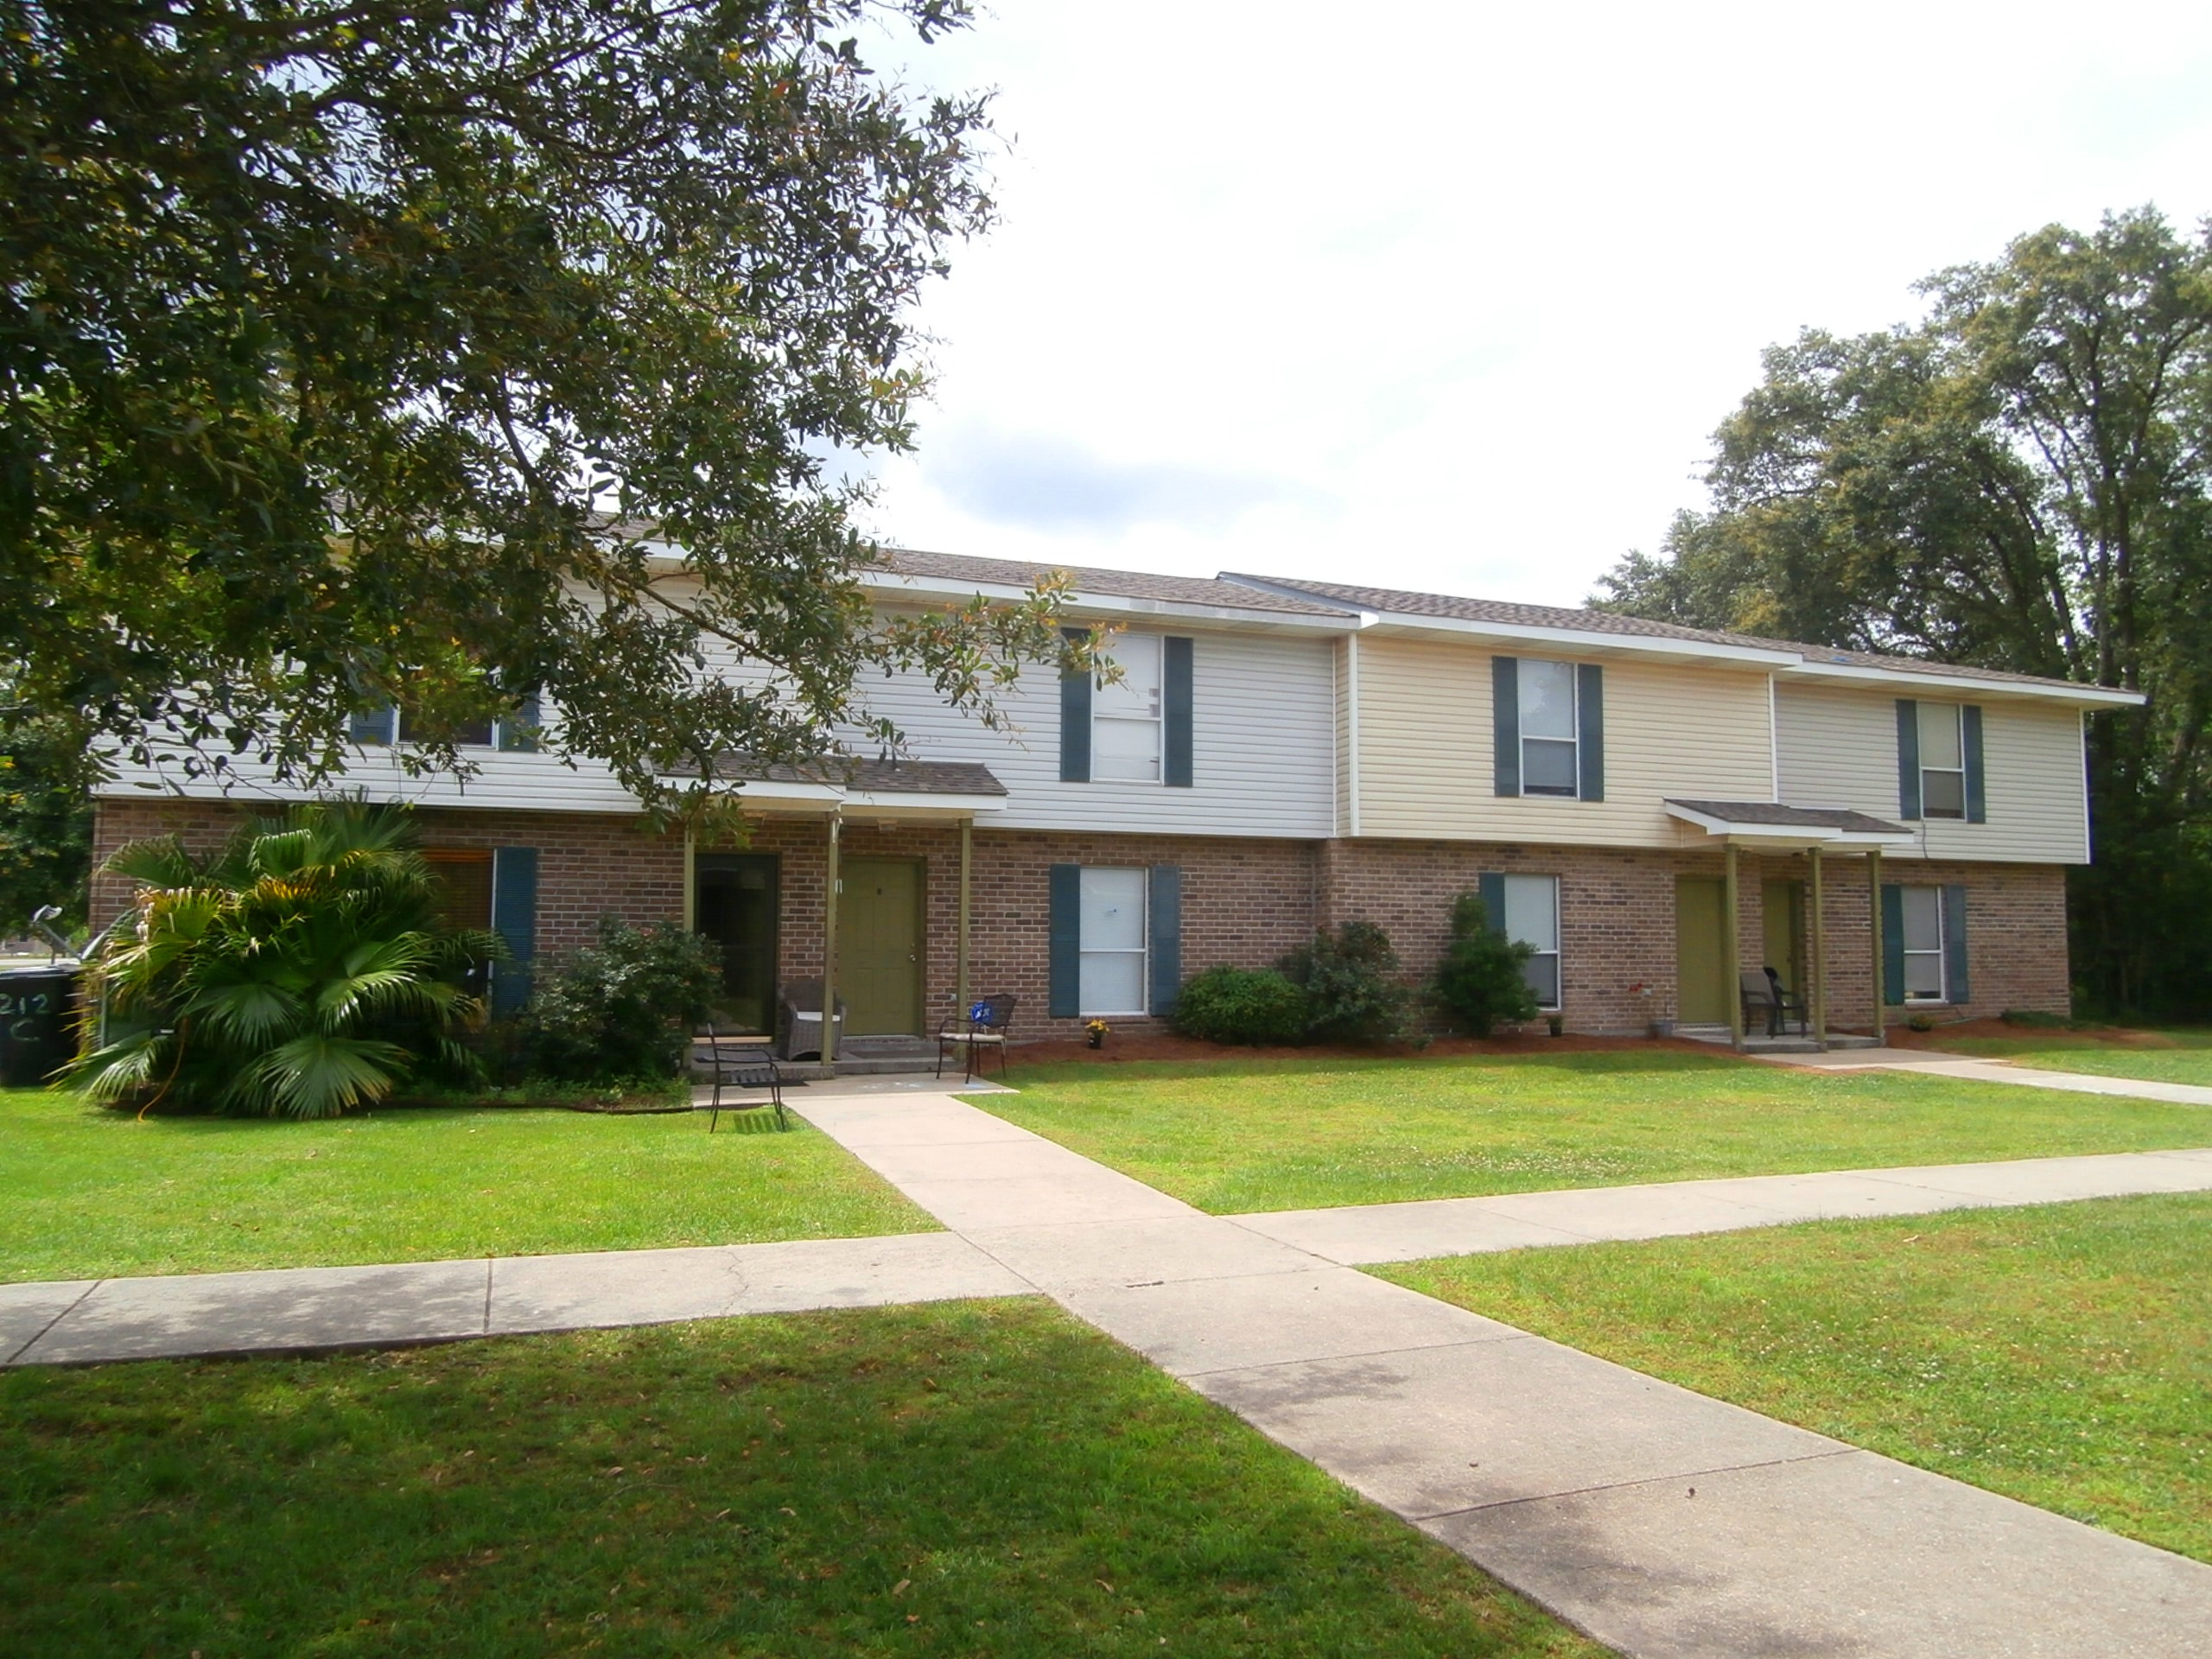 212 S. CONCORD ROAD, Belle Chasse, Louisiana 70037